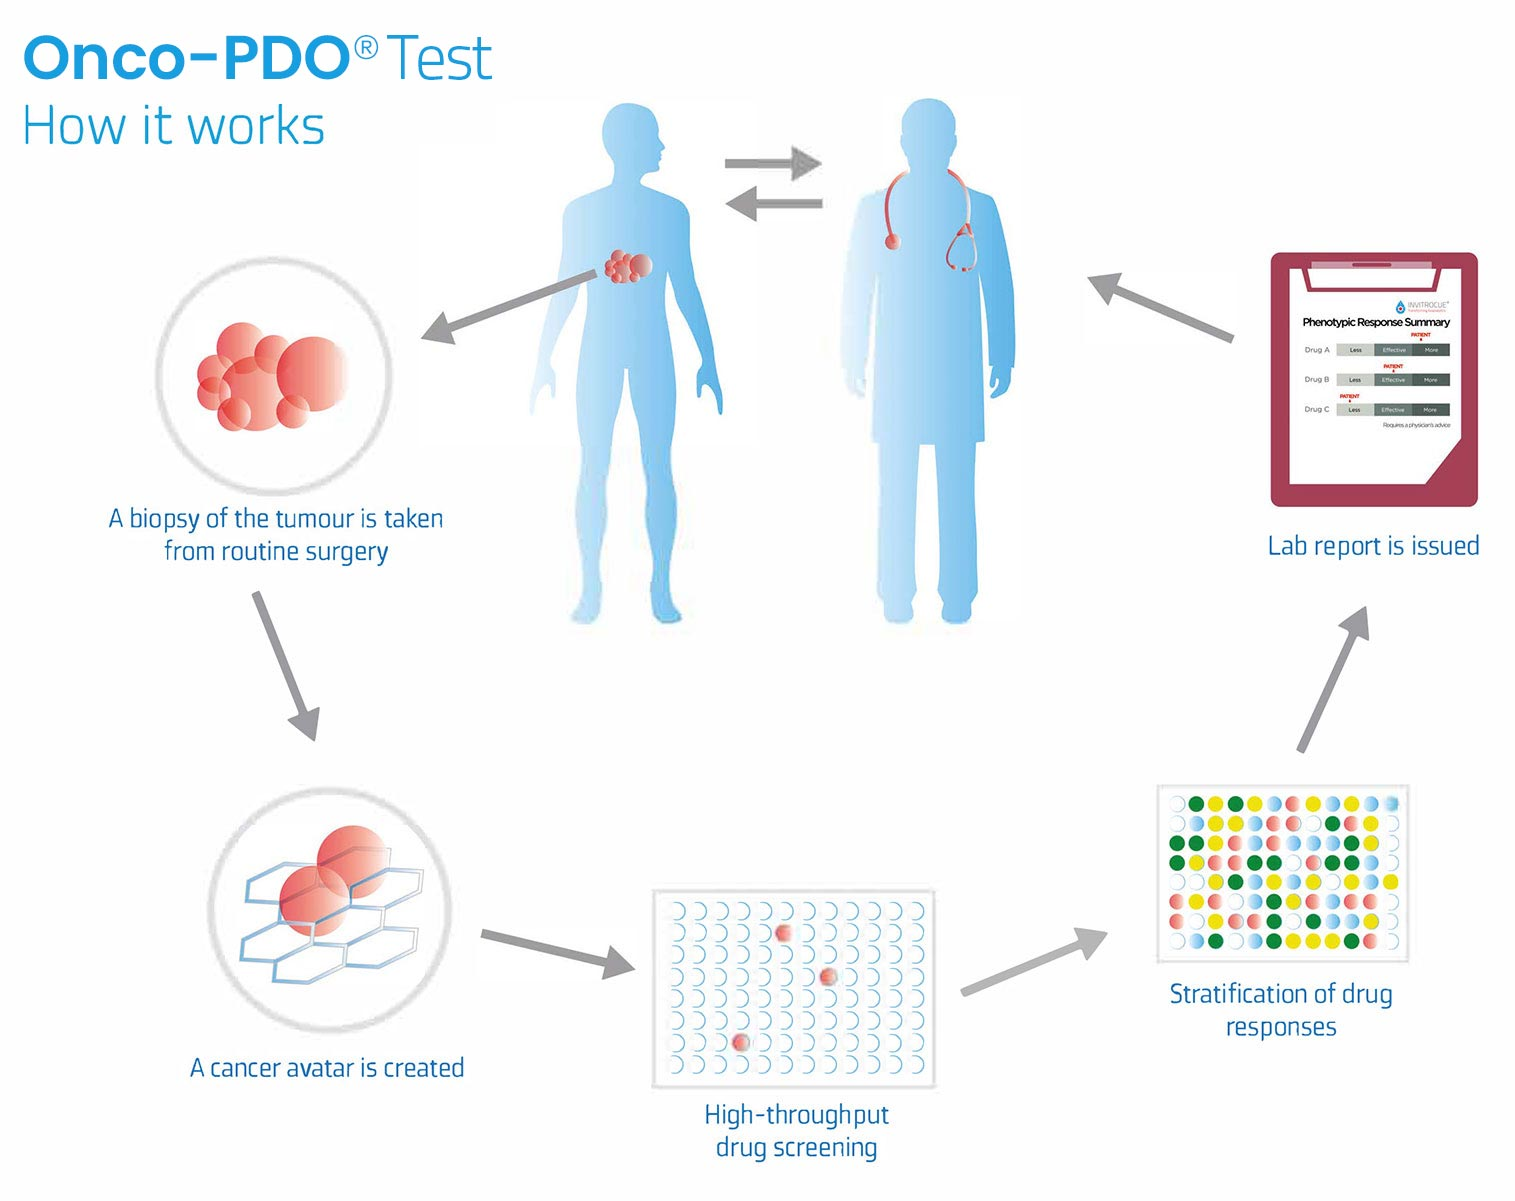 Onco PDO Test - How it works